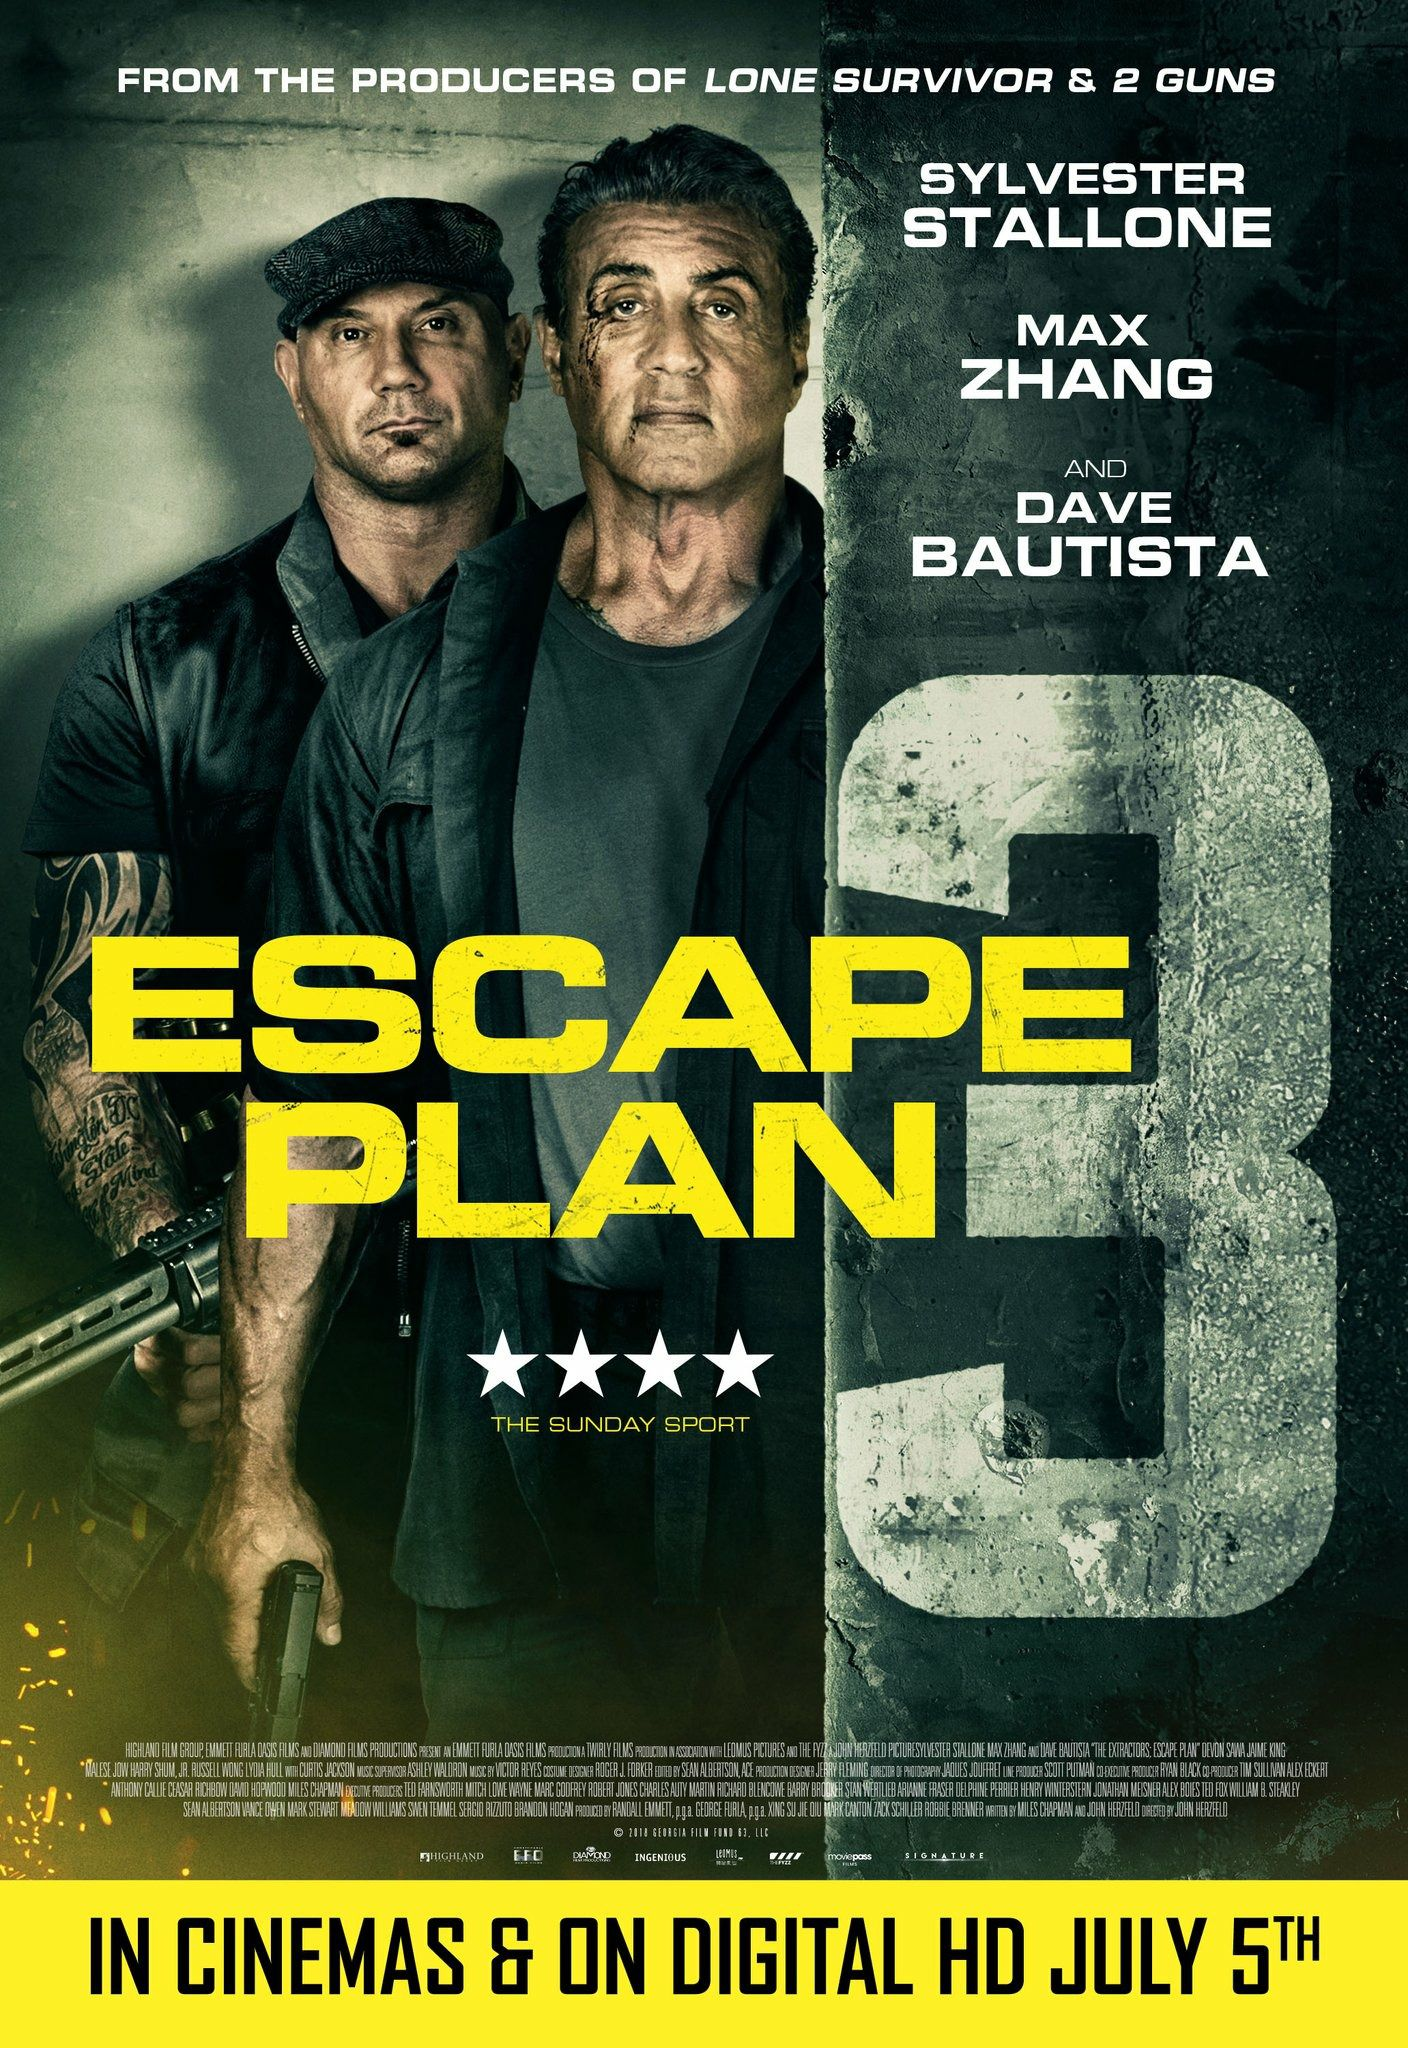 Escape Plan 3 the Extractors (2019) with Sylvester Stallone & Dave Bautista